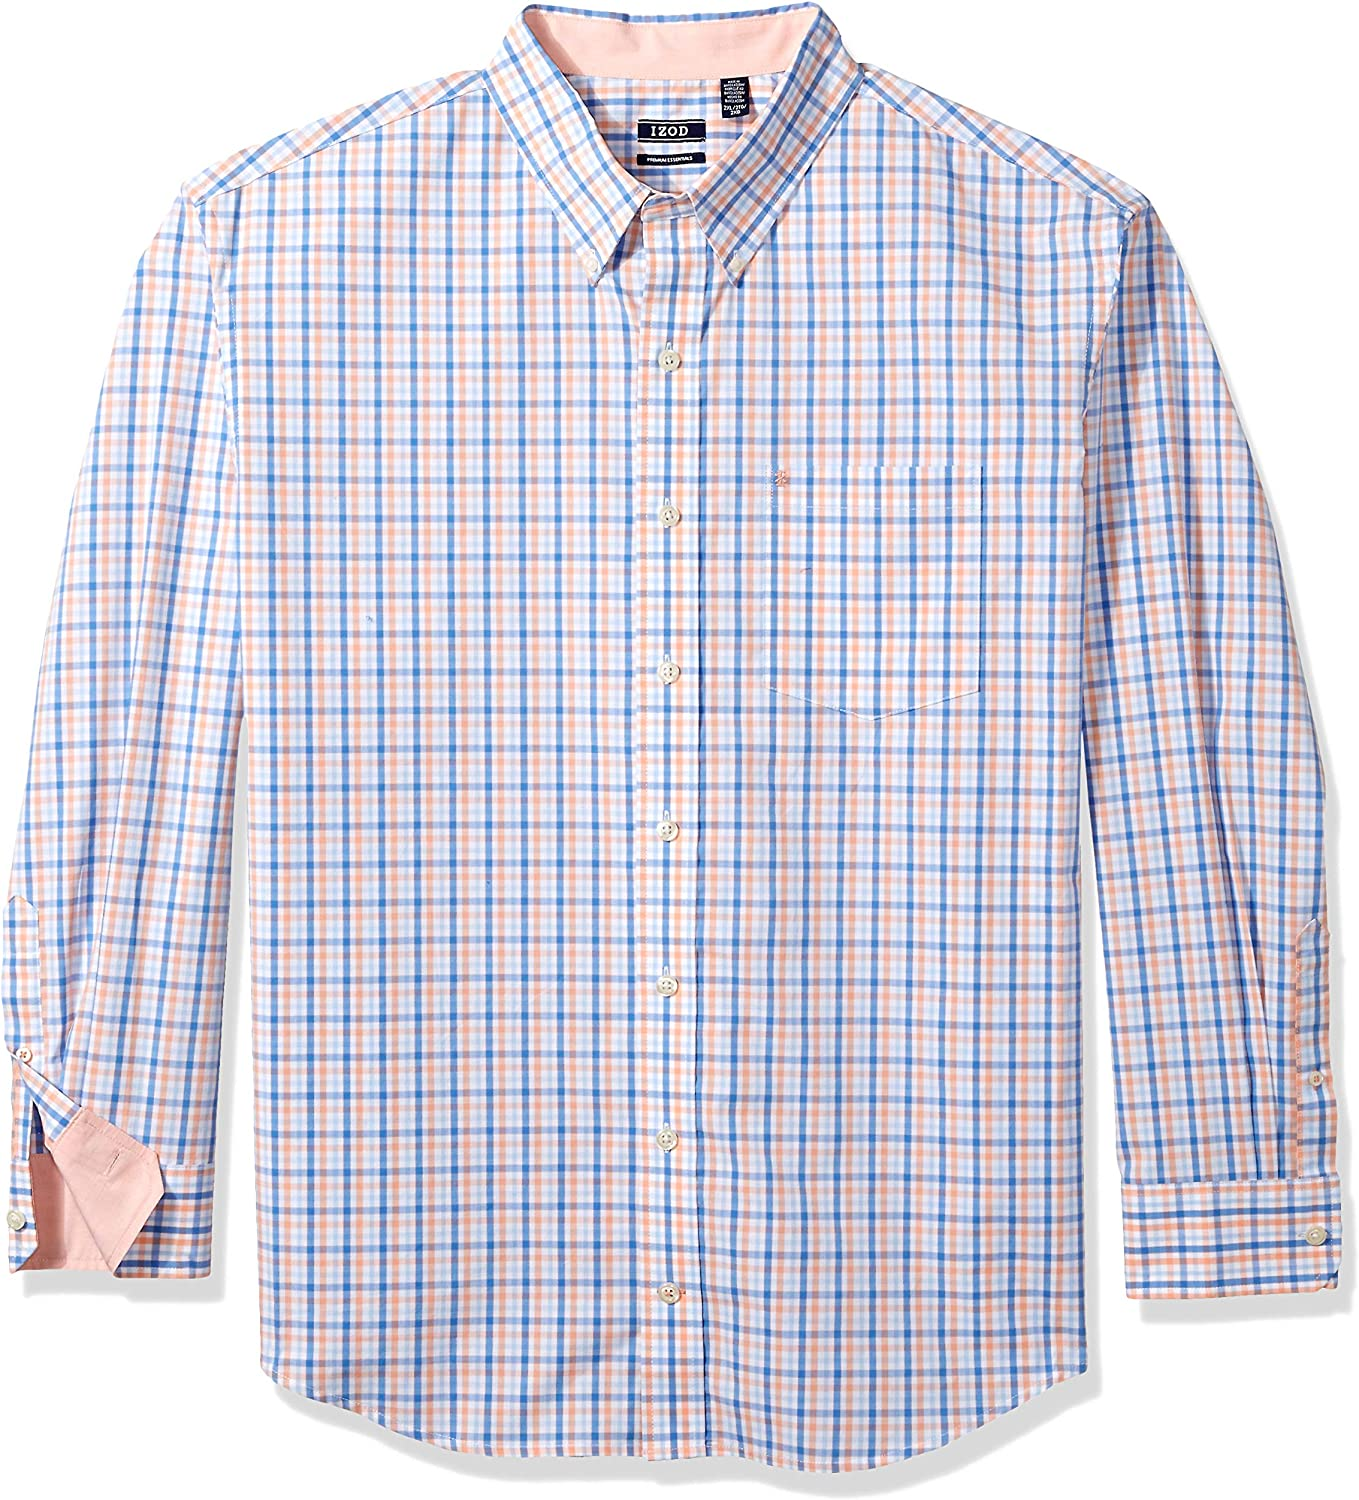 IZOD Mens Big and Tall Button Down Long Sleeve Stretch Performance Tattersal Shirt